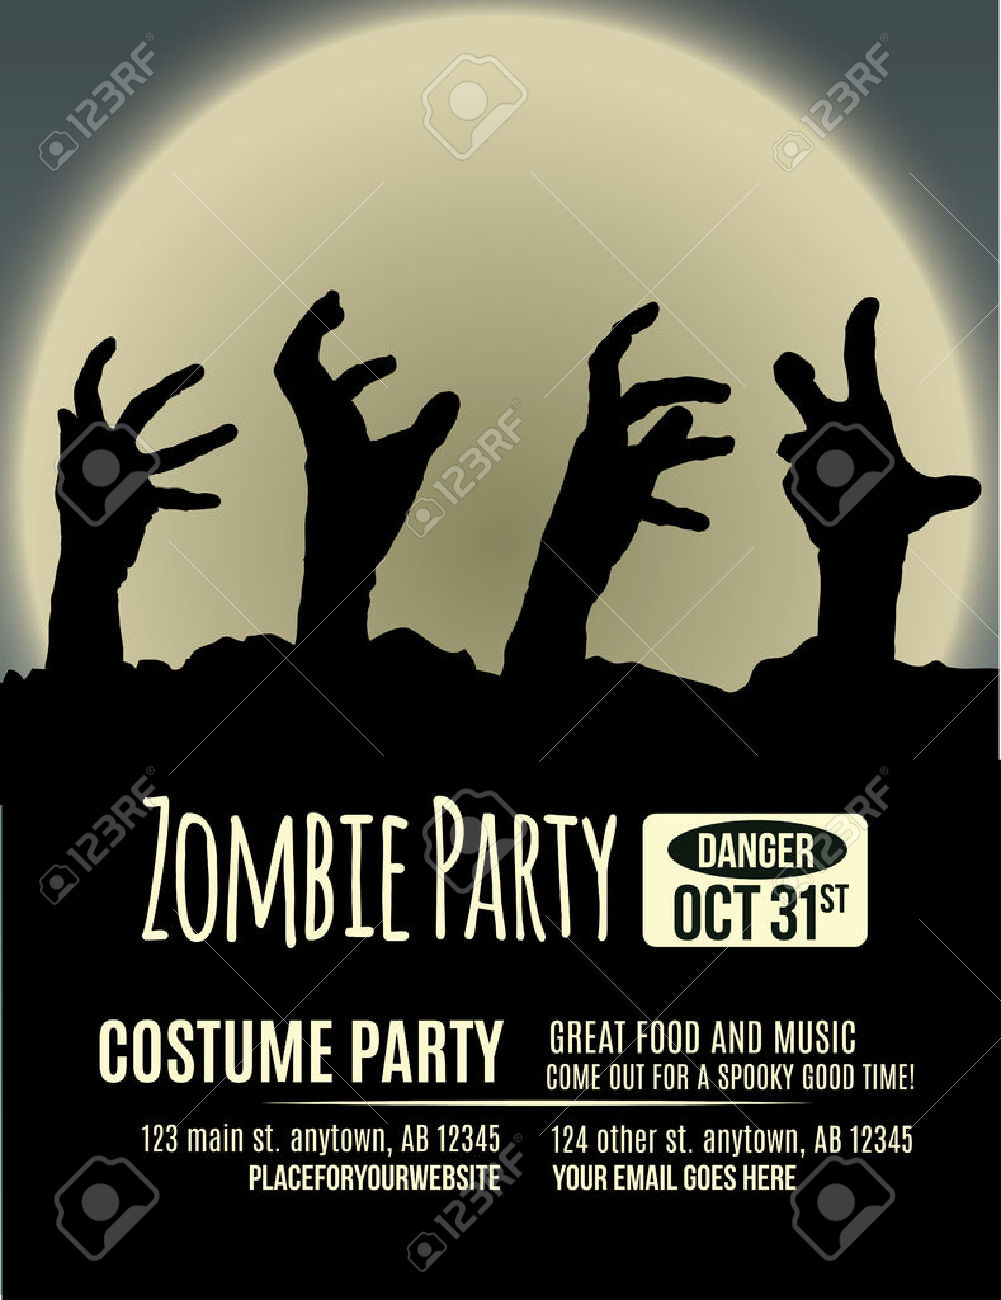 Halloween Party Invitation With Zombie Hands Coming Up Out Of